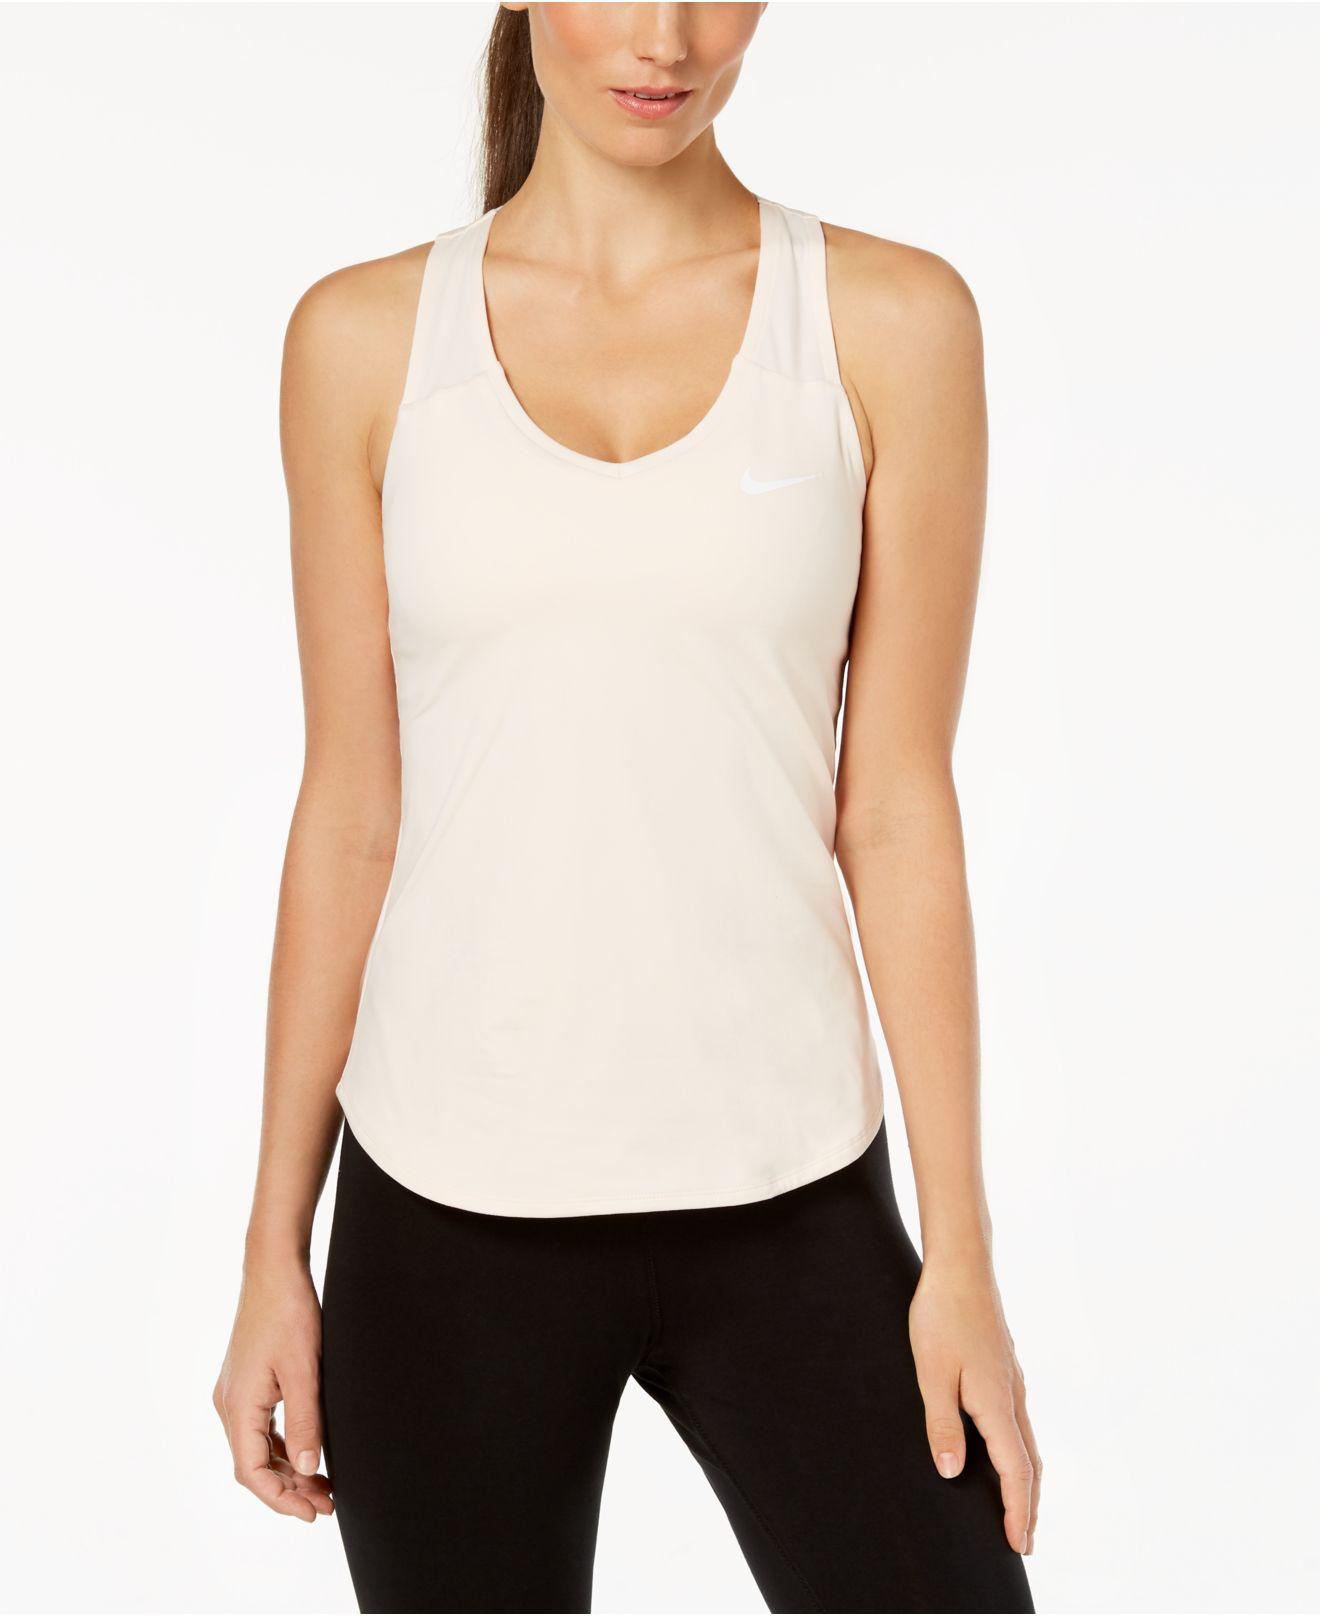 5438c476 Nike White Court Racerback Dri-fit Tennis Tank Top